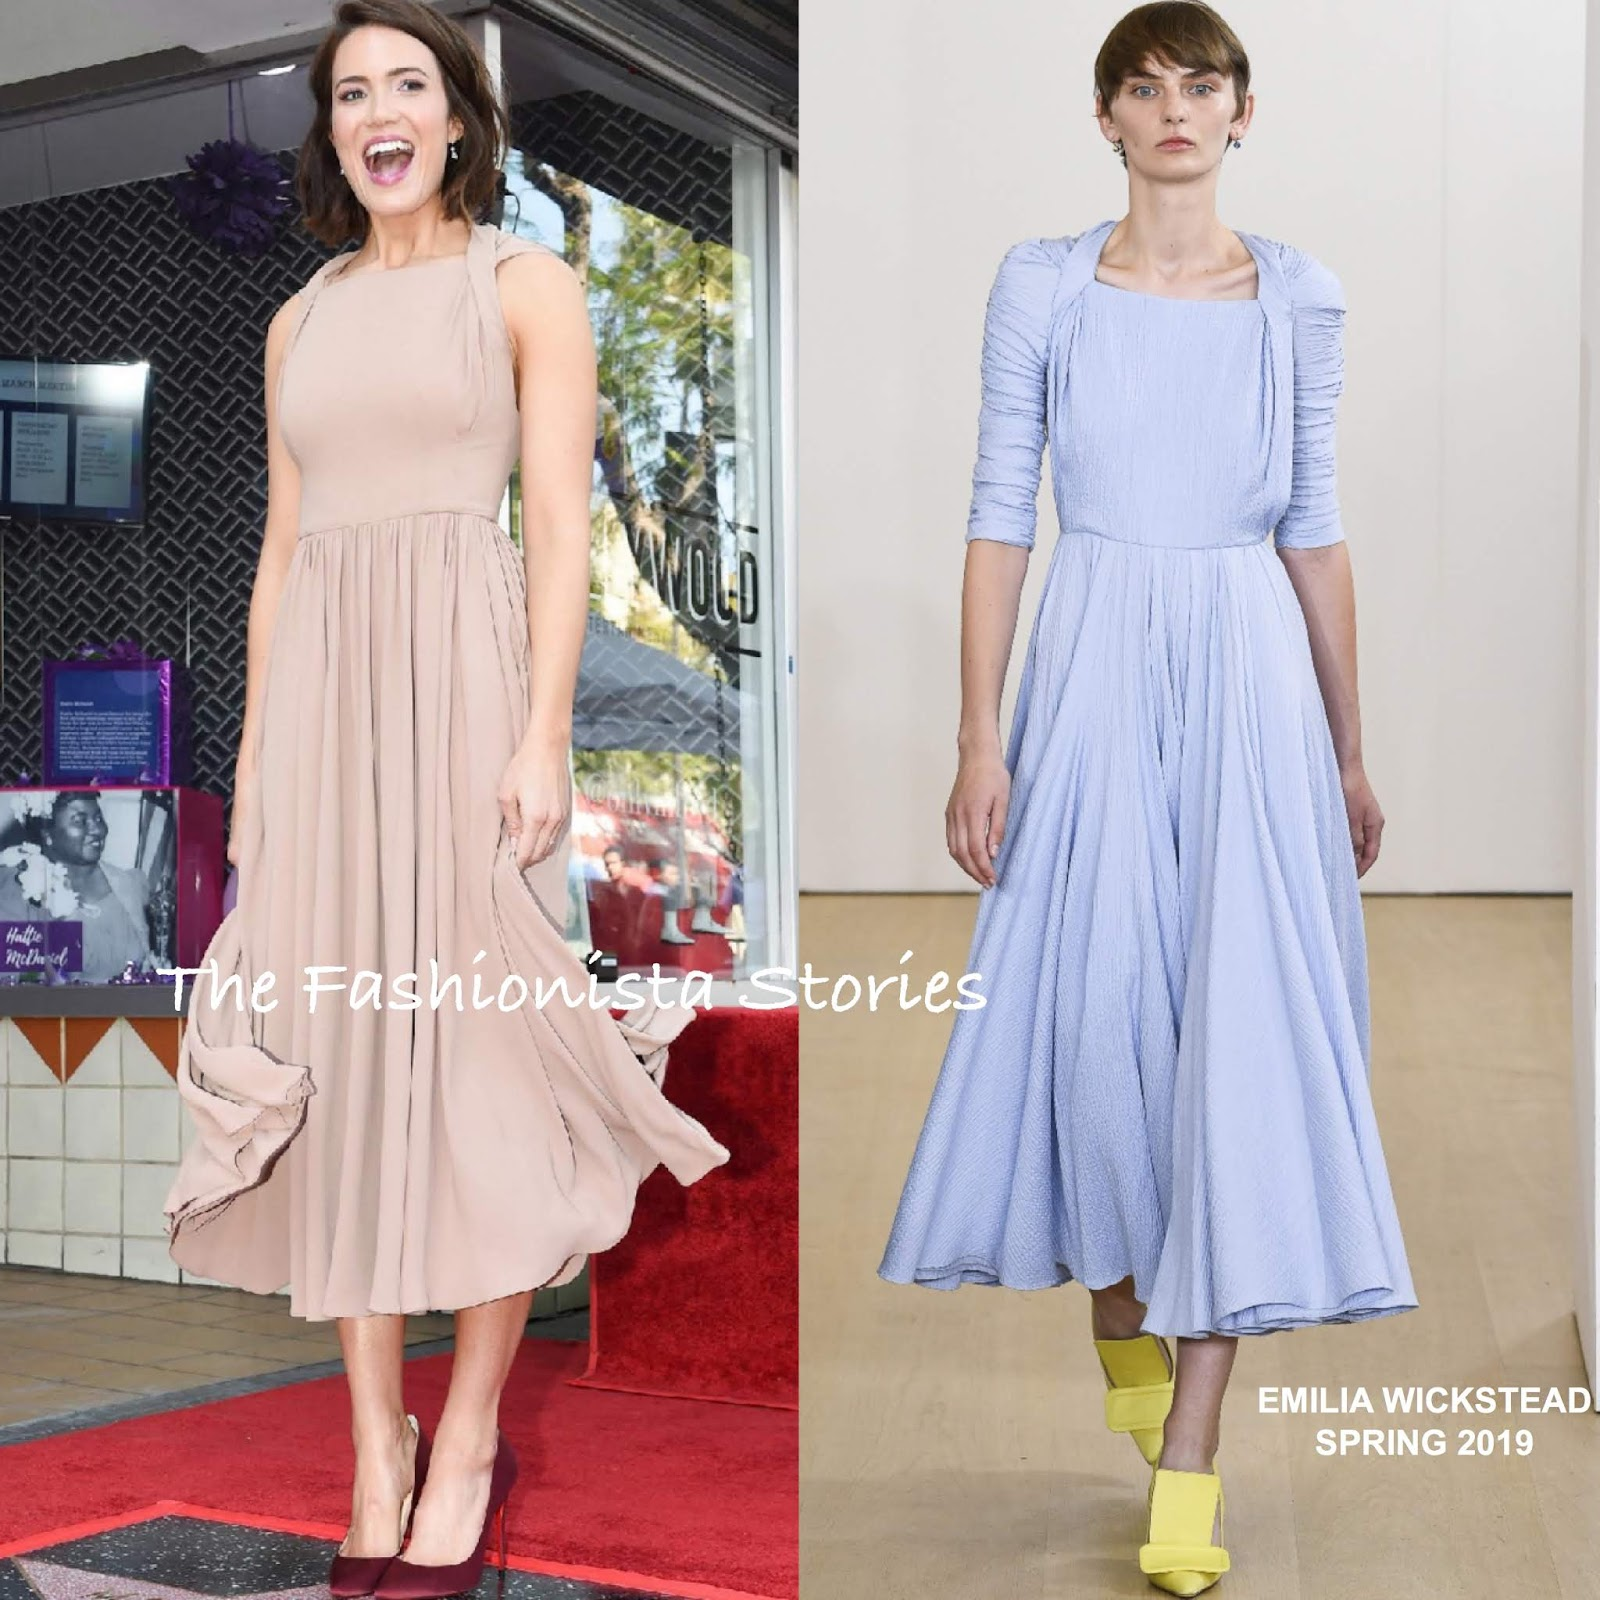 620dfd058ef3 Mandy Moore in Emilia Wickstead at her Hollywood Walk of Fame Star Ceremony